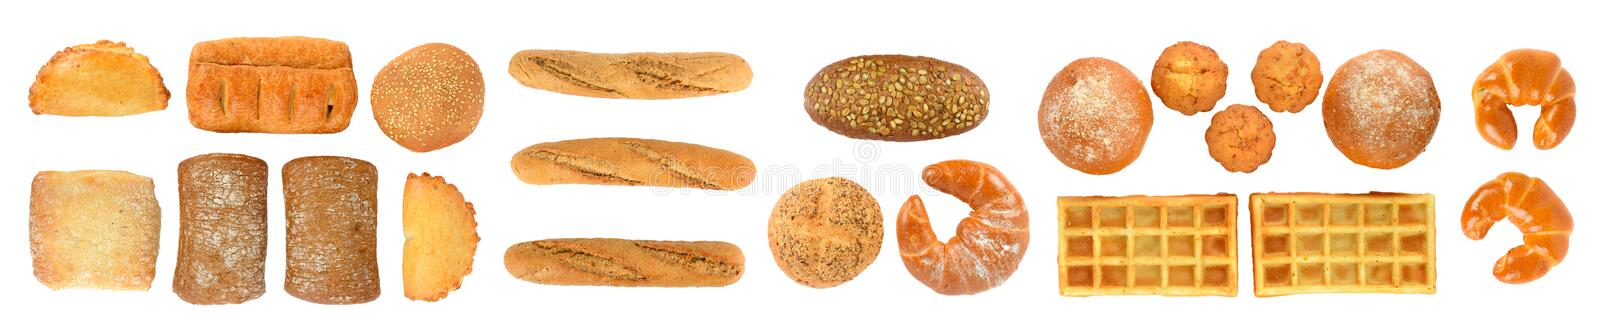 Panoramic set of fresh bread products isolated on white background. Top view. royalty free stock image